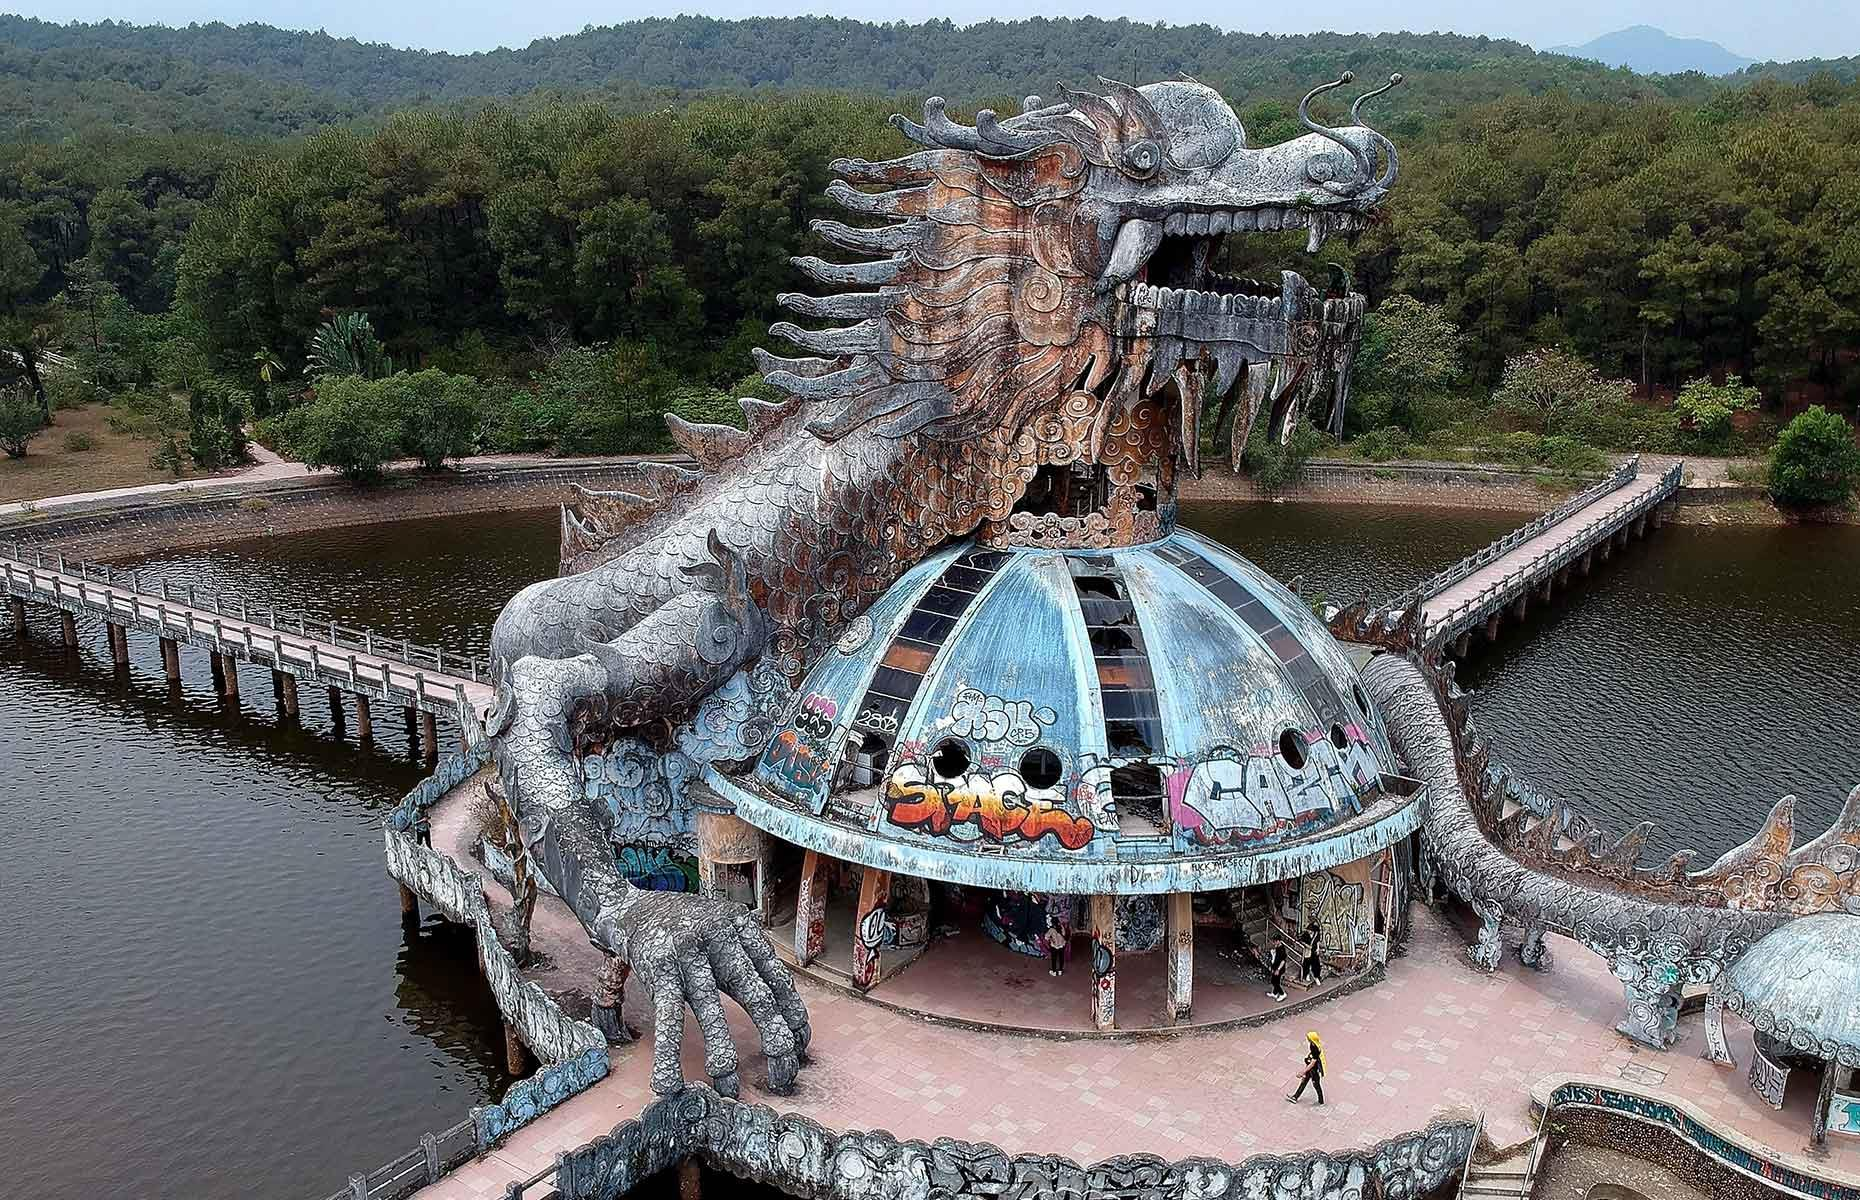 Slide 32 of 40: Perhaps the most intriguing structure in the park is this giant sculpture of a dragon, overlooking a lake. Urban explorers have even climbed inside, via a staircase located in the beast's body, to peer out from its gnashing teeth.